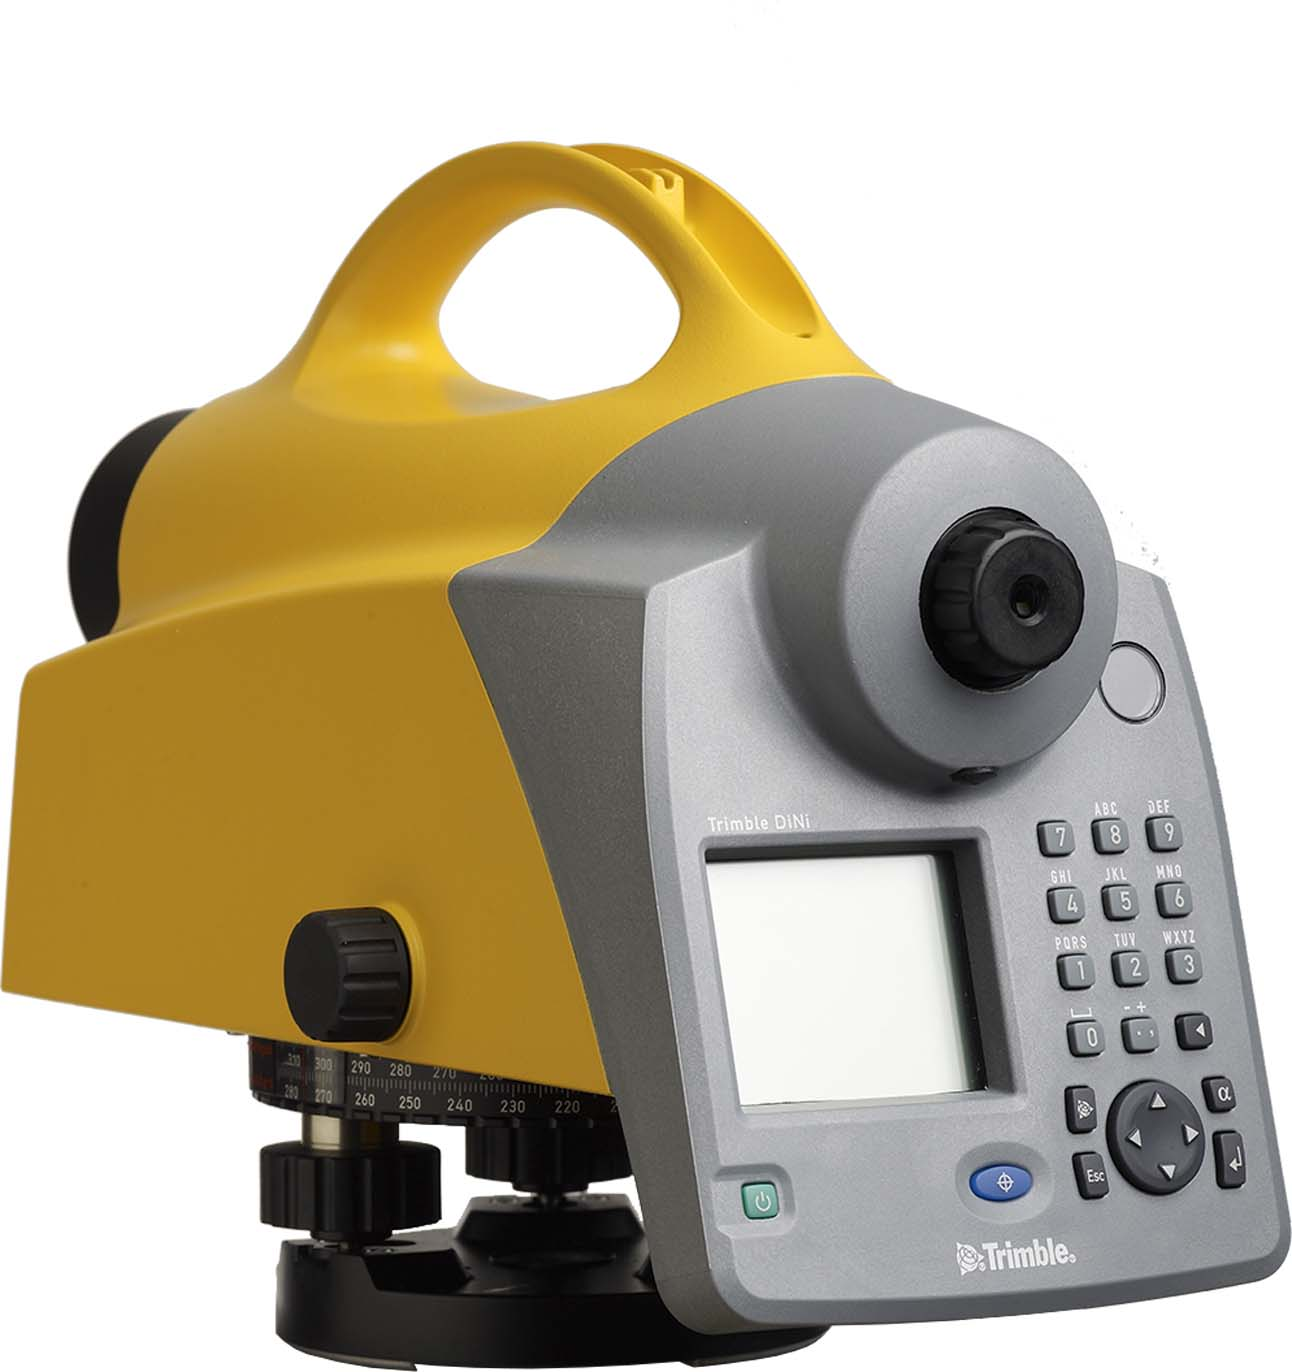 Trimble DiNi 0.7 от «ФокусГео». Фото N4